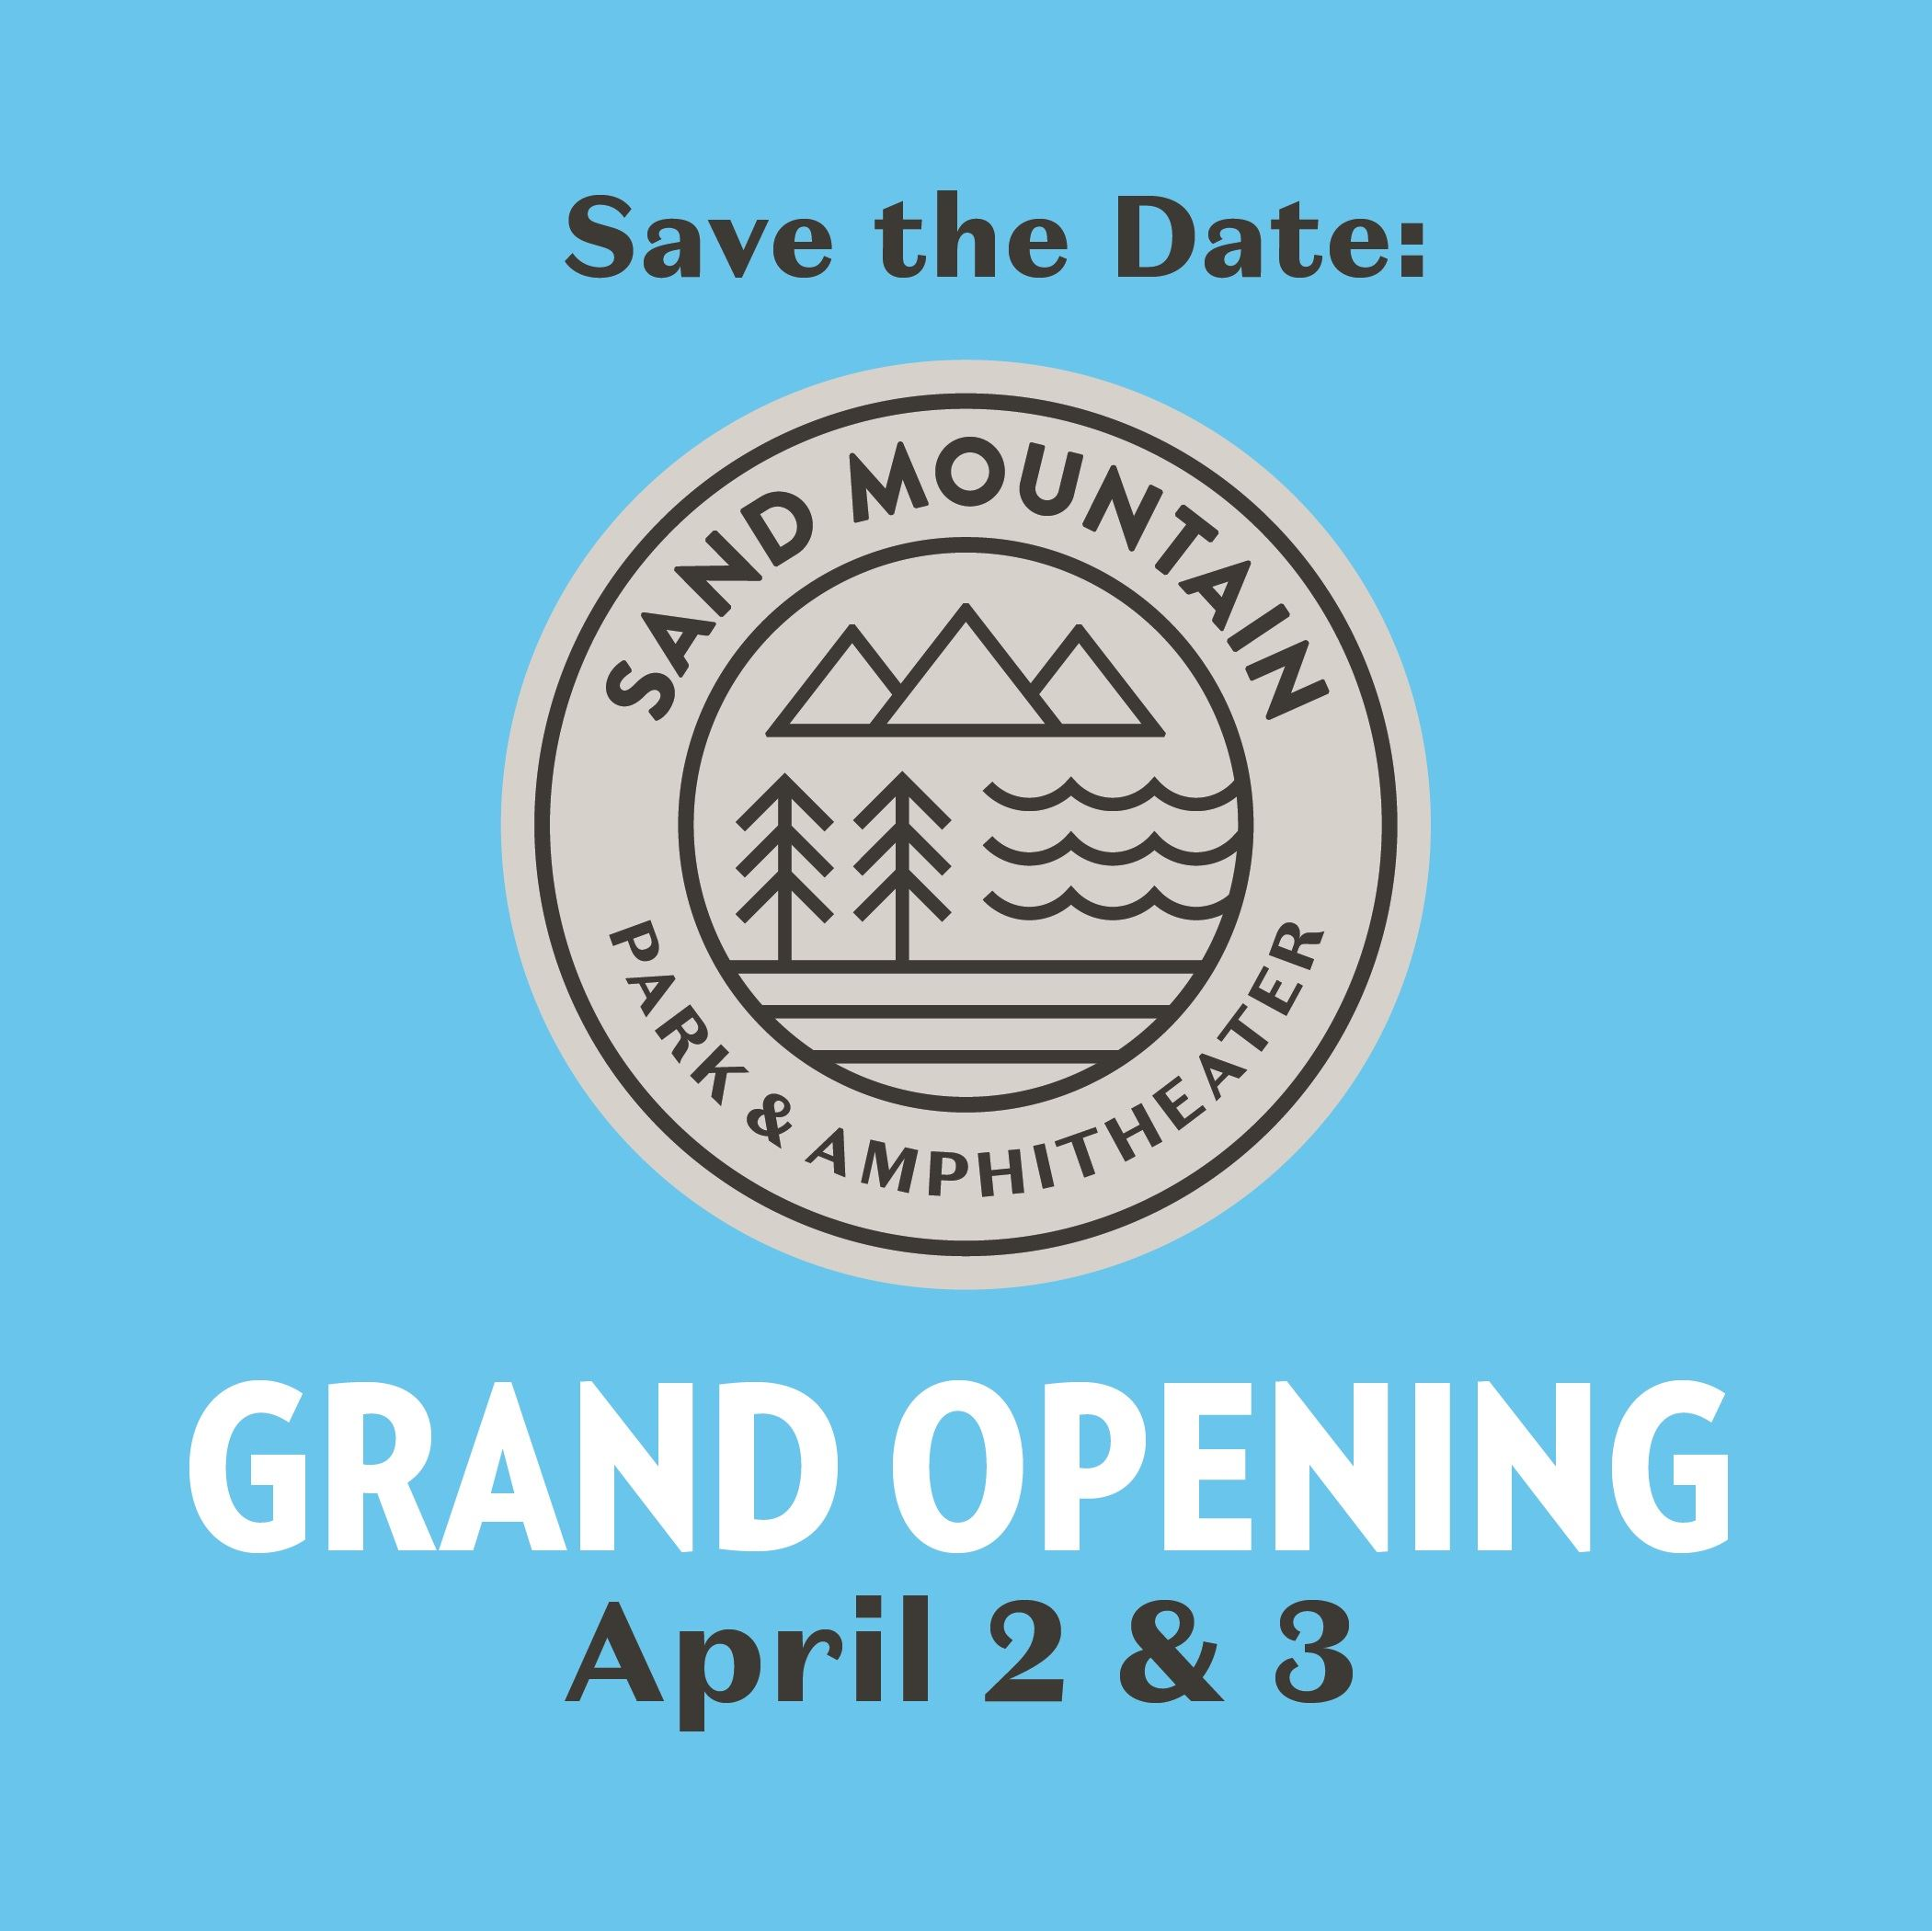 Save the Date Flyer for Sand Mountain Park's Grand Opening Event in Albertville April 2 & 3rd, 20